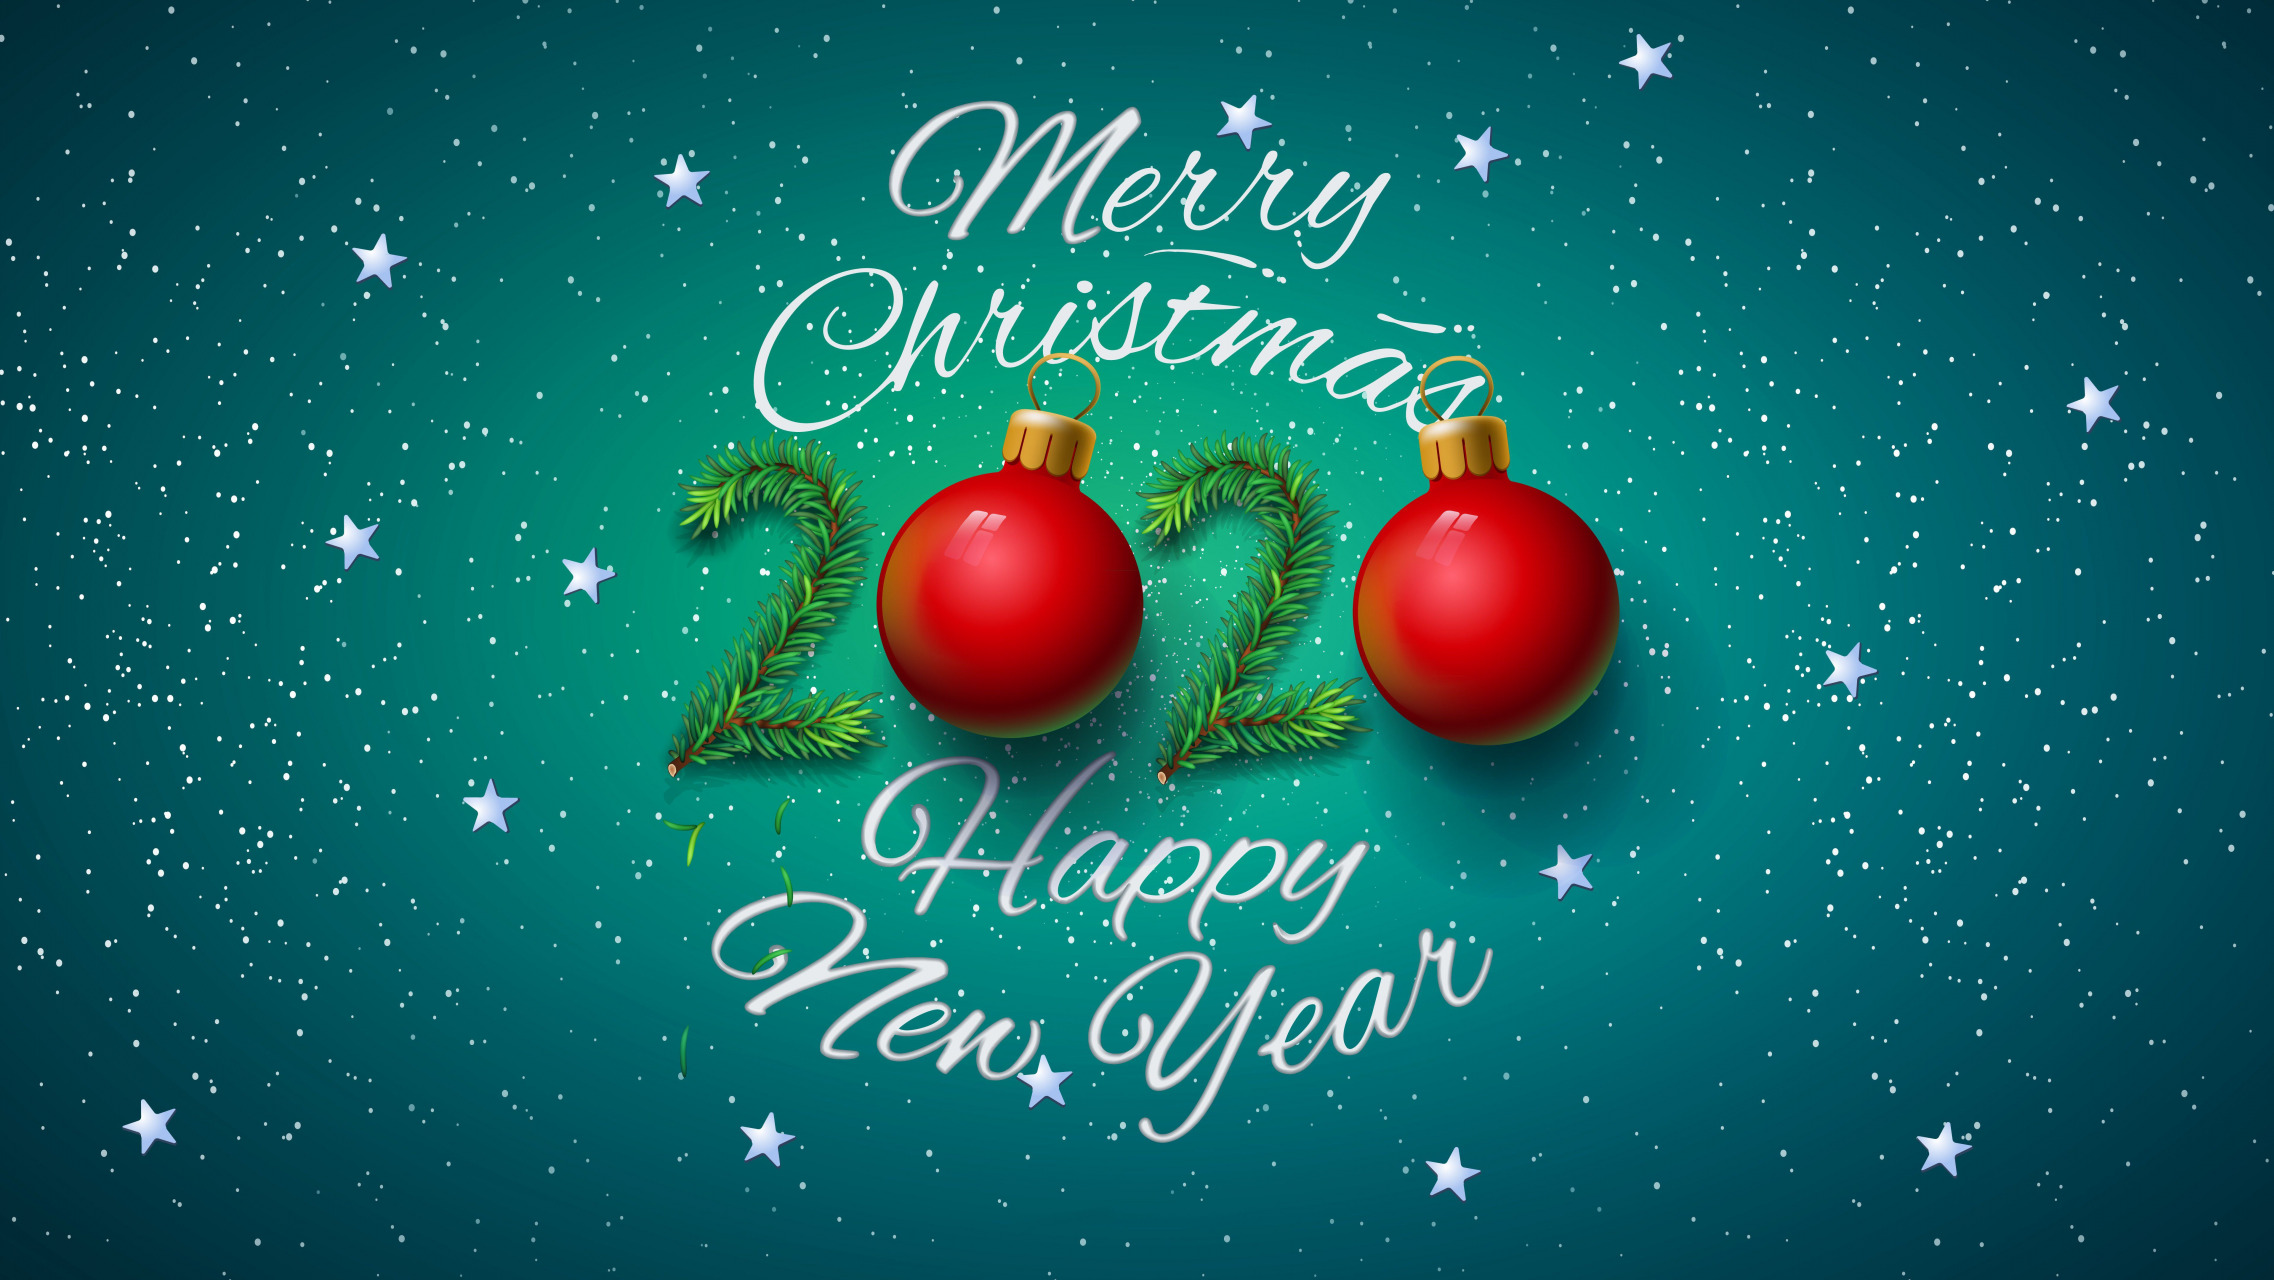 Merry Christmas And Happy New Year Hd Wallpaper Background